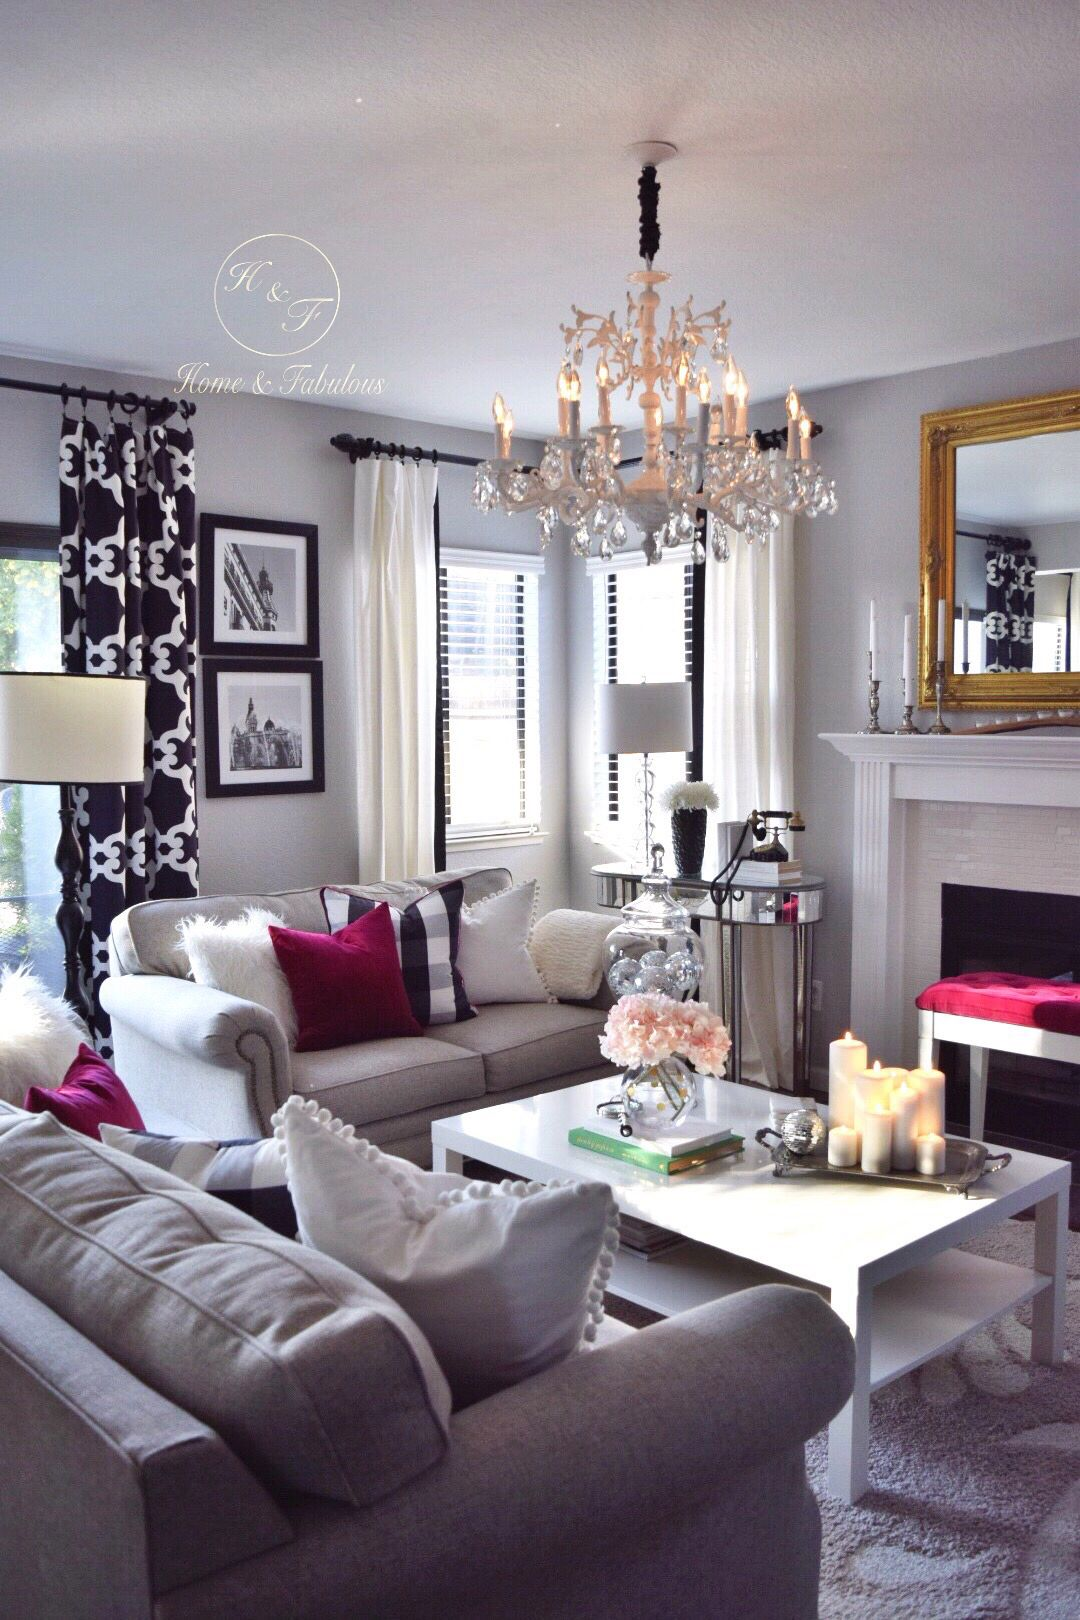 Living Room Decor - Wohnzimmer Dekor | redecorating | Pinterest ...